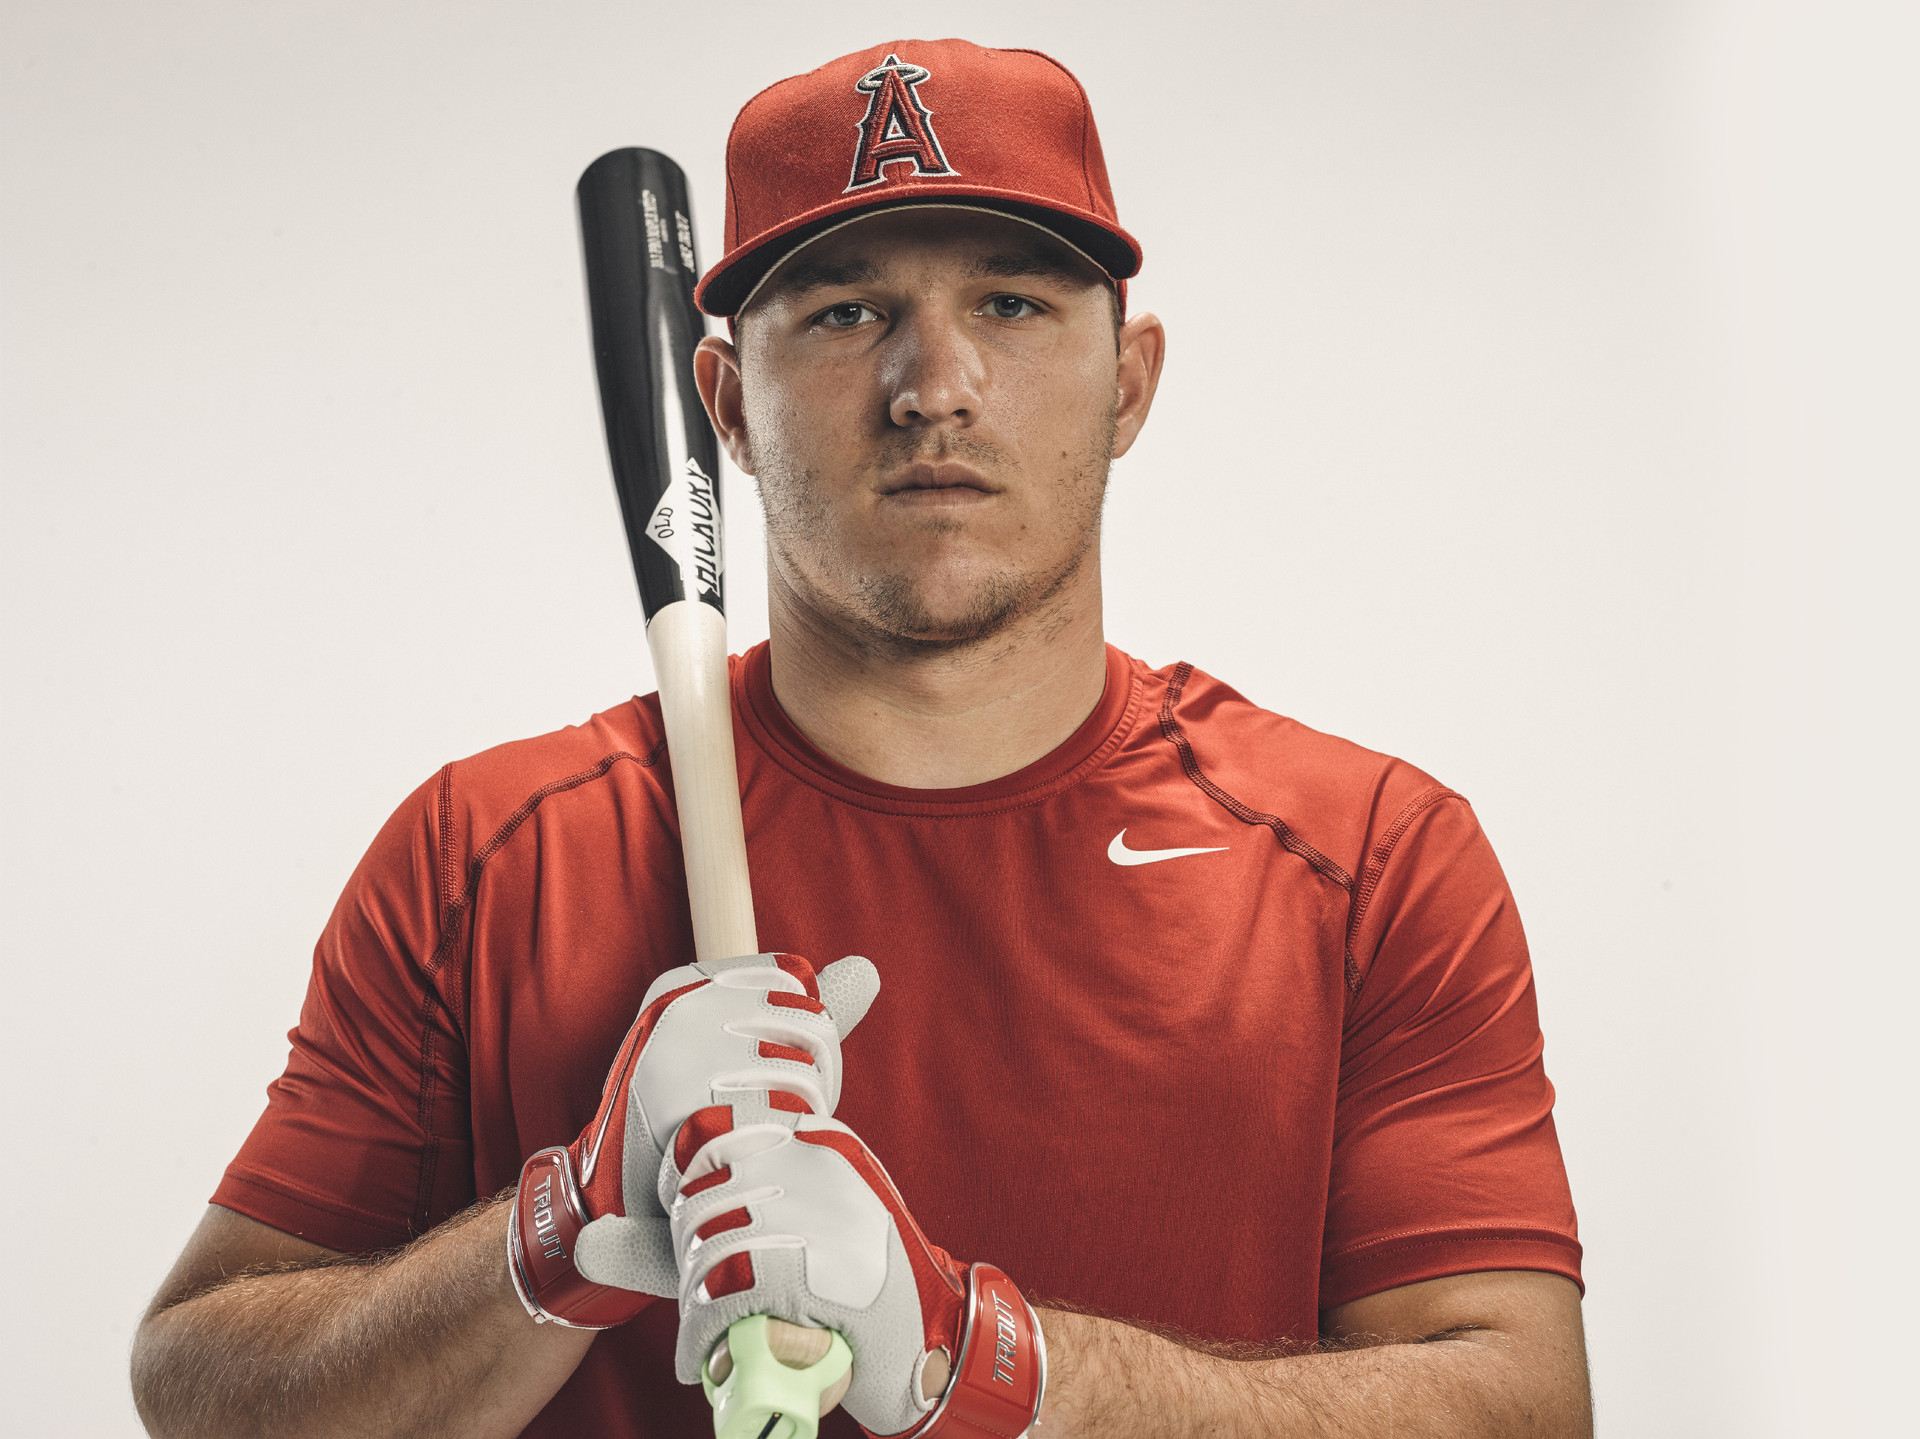 Mike Trout photography by JJ Miller